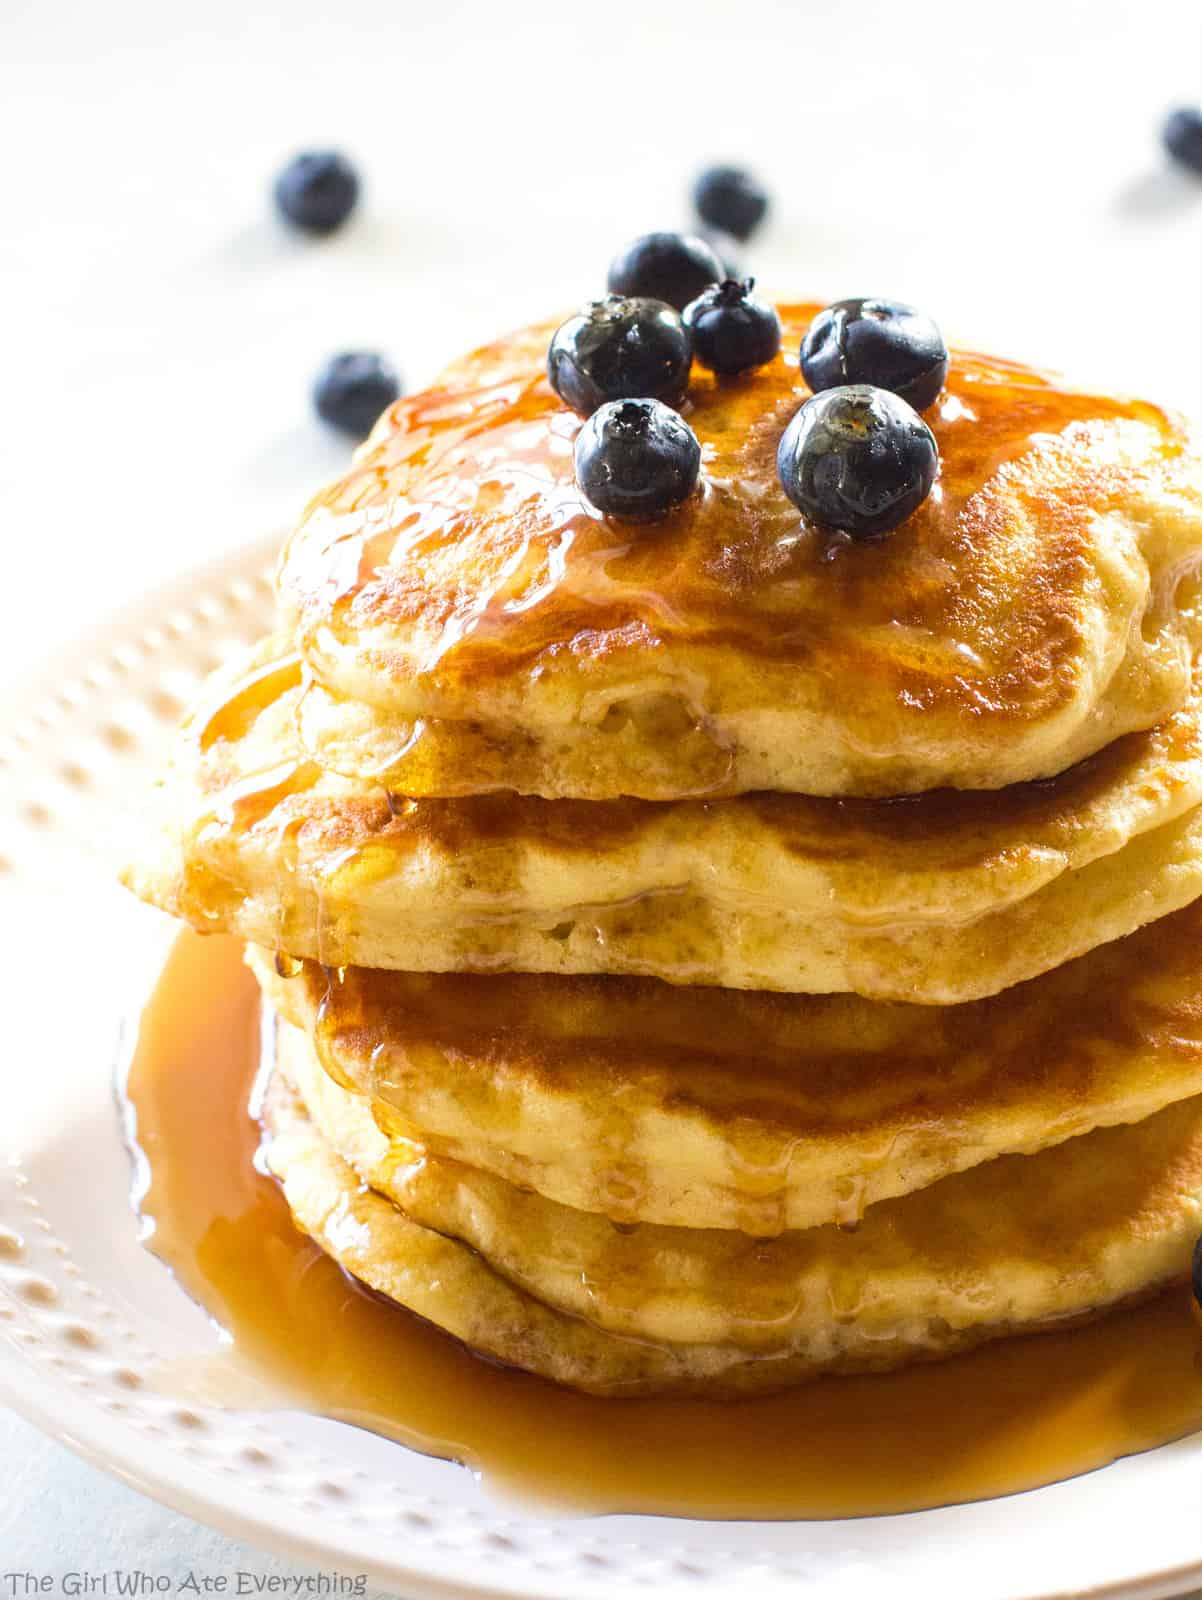 Fluffy pancakes and blueberries with syrup on a plate